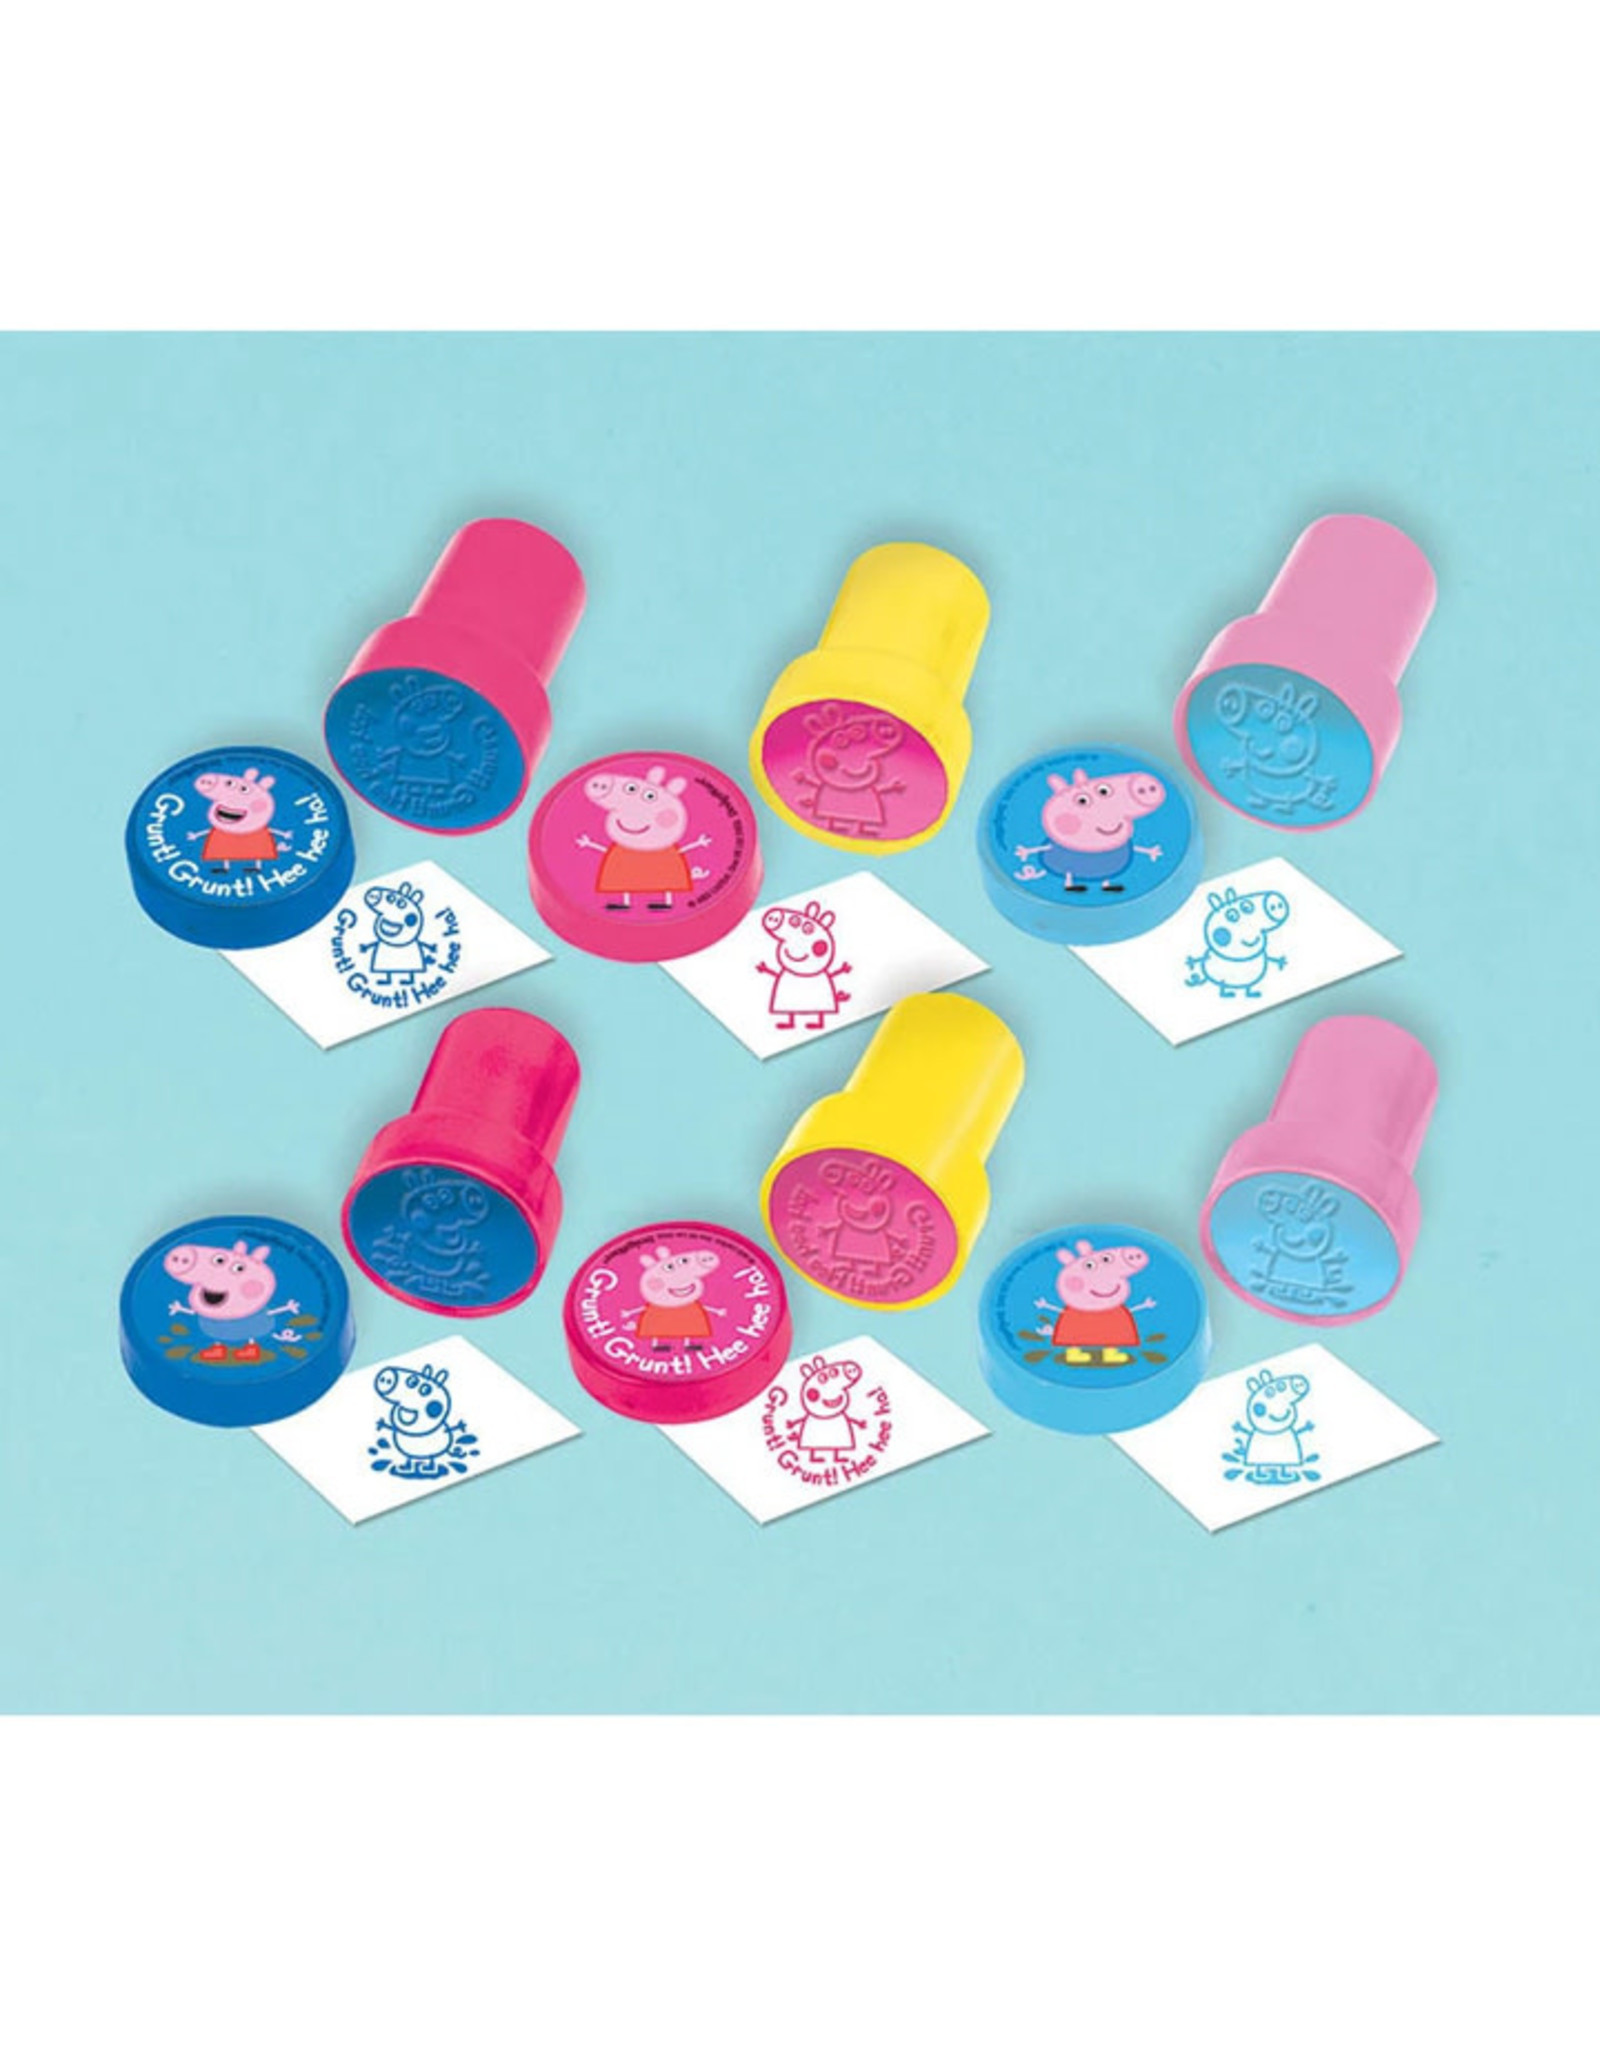 Peppa Pig Party Favor Stamps - 6ct